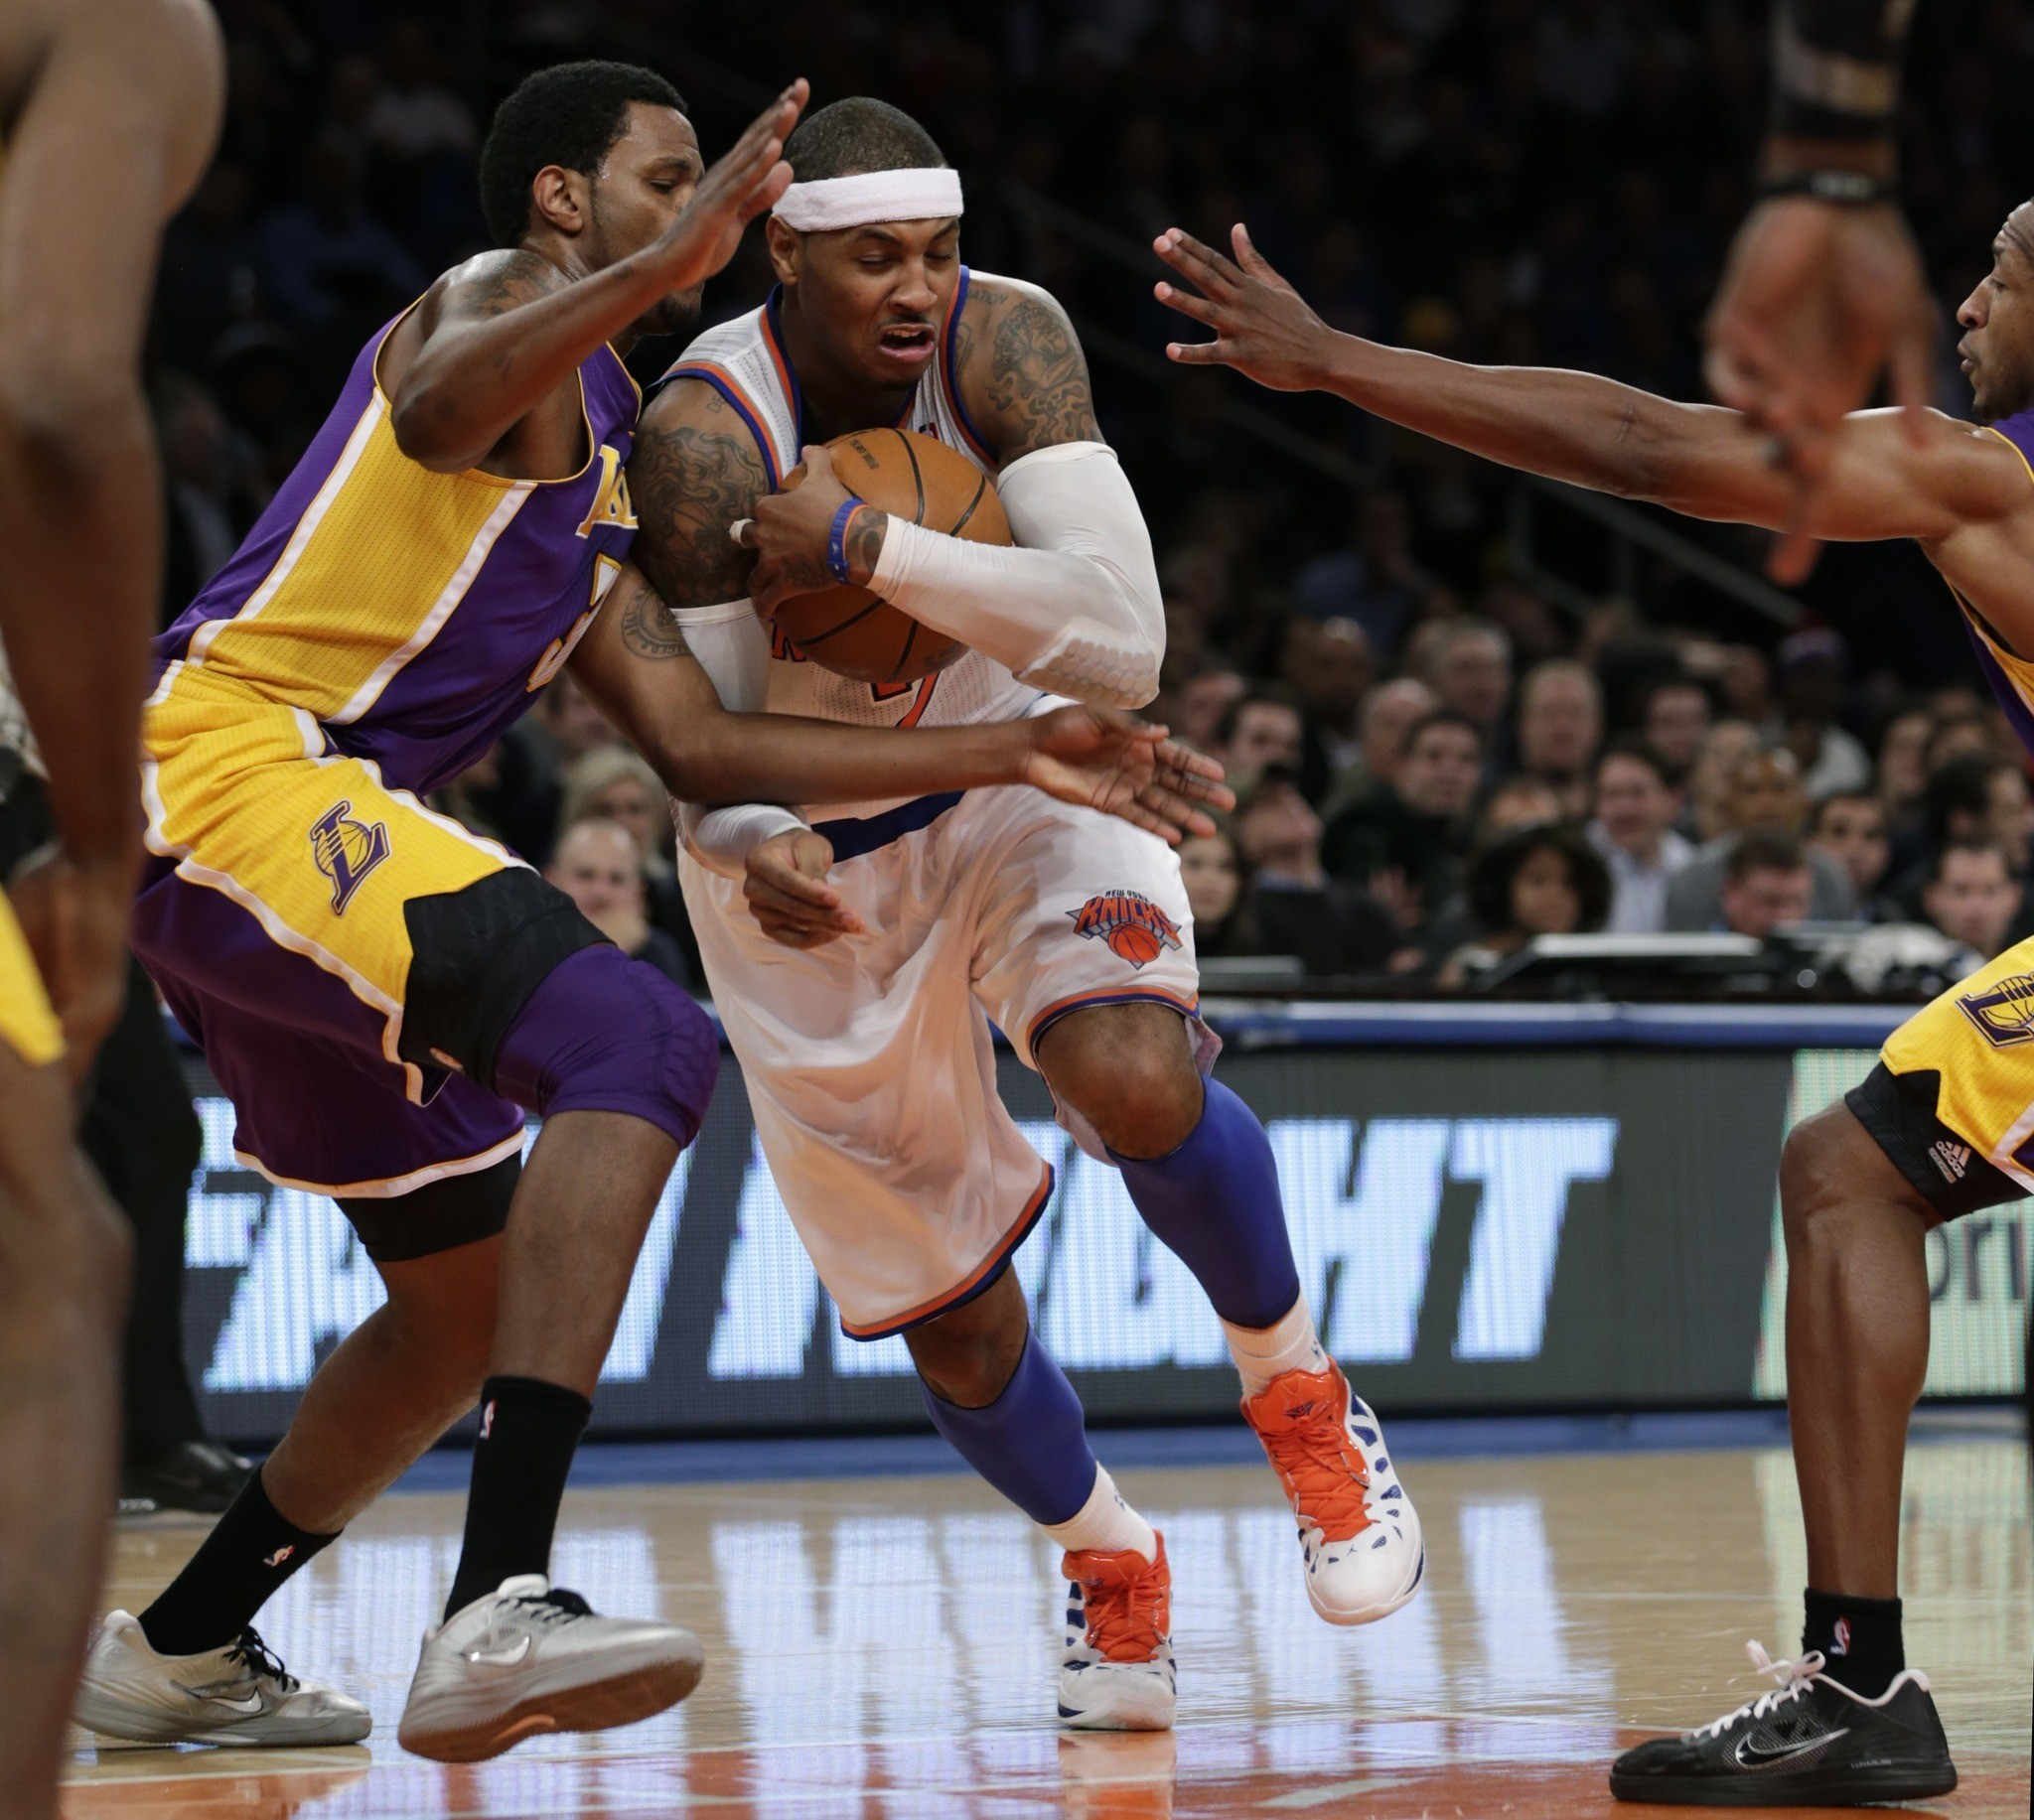 Photos: Lakers vs. Knicks - Carmelo Anthony, Devin Ebanks